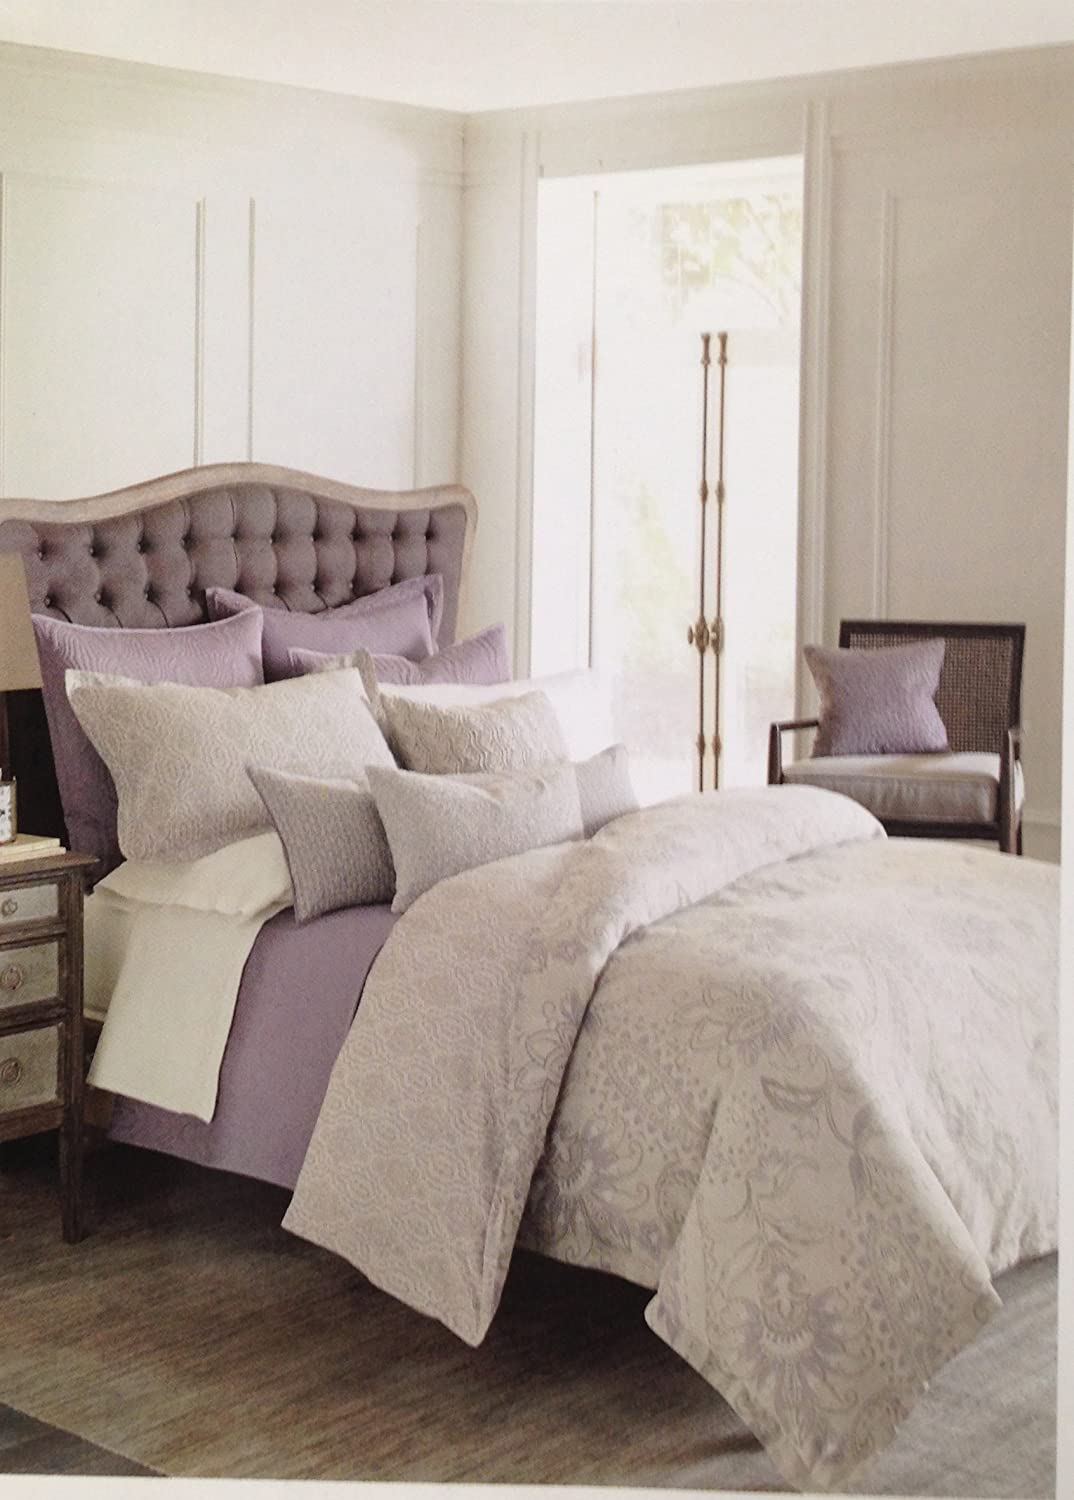 bedding harbor lauren sale ralph collections covers decor clearance reversible bloomingdales sweetgalas comforte discontinued topic chelsea luxury sets macys duvet past on discount comforters collec house related to trends piece comforter uk old